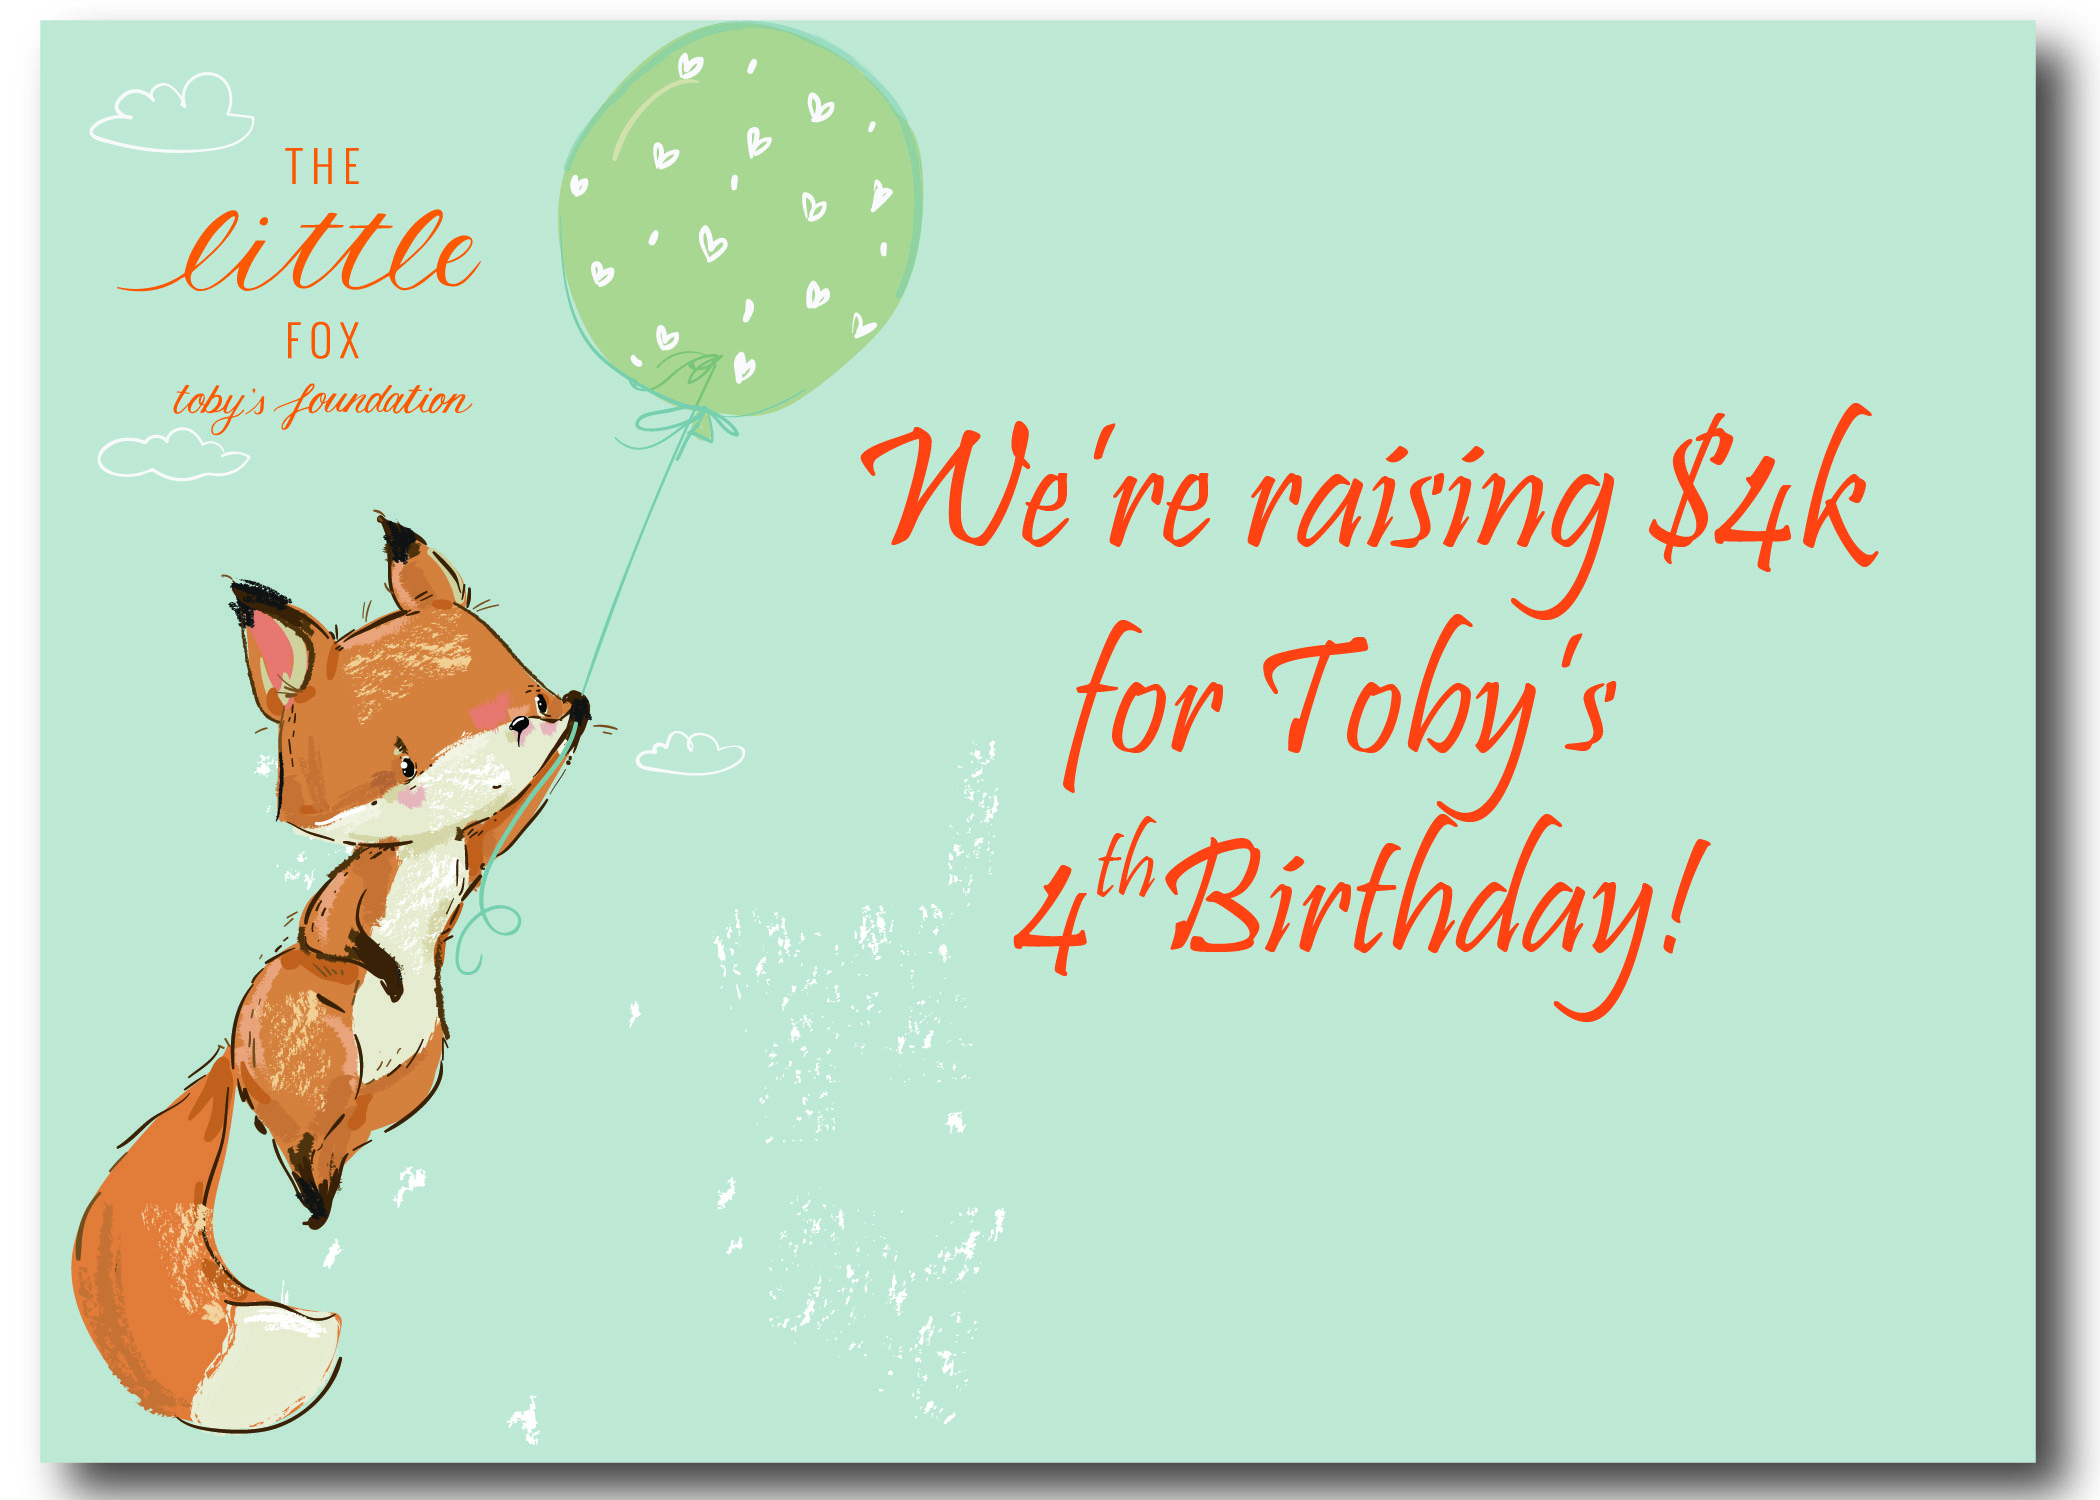 Toby's Fourth Birthday Celebration!